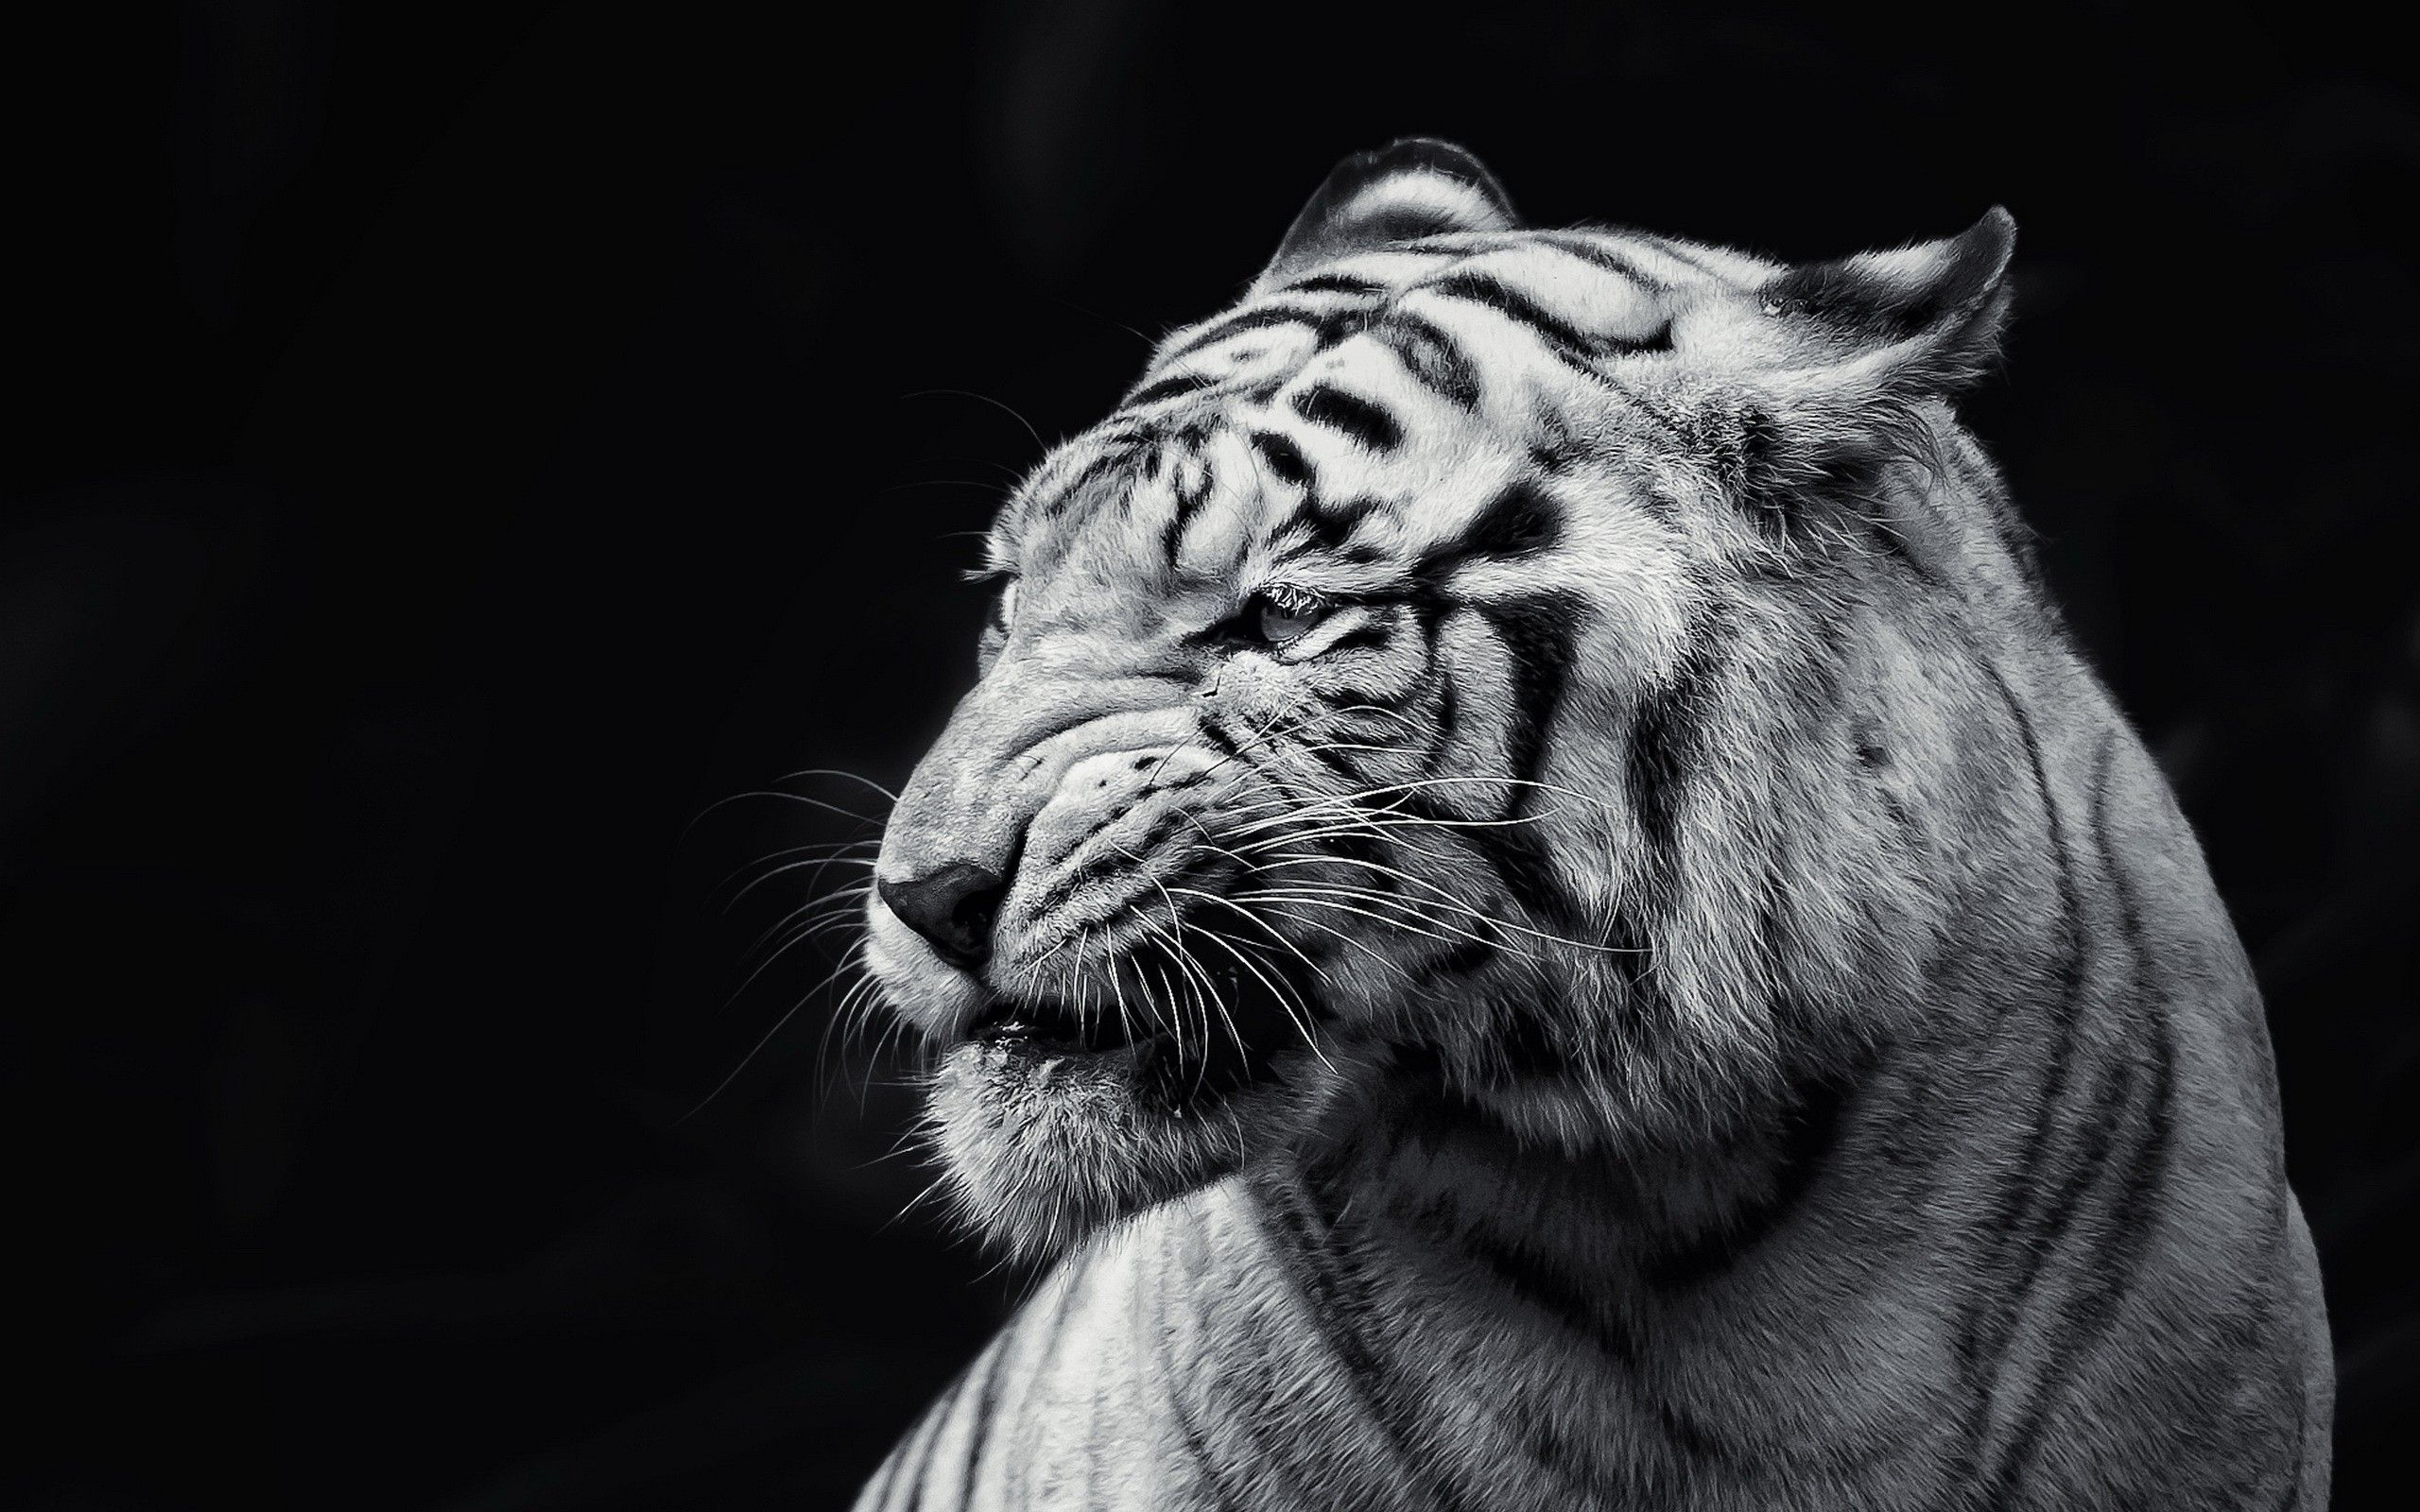 Animals Tigers Black Background 2560x1600 Wallpaper Tiger Wallpaper White Tiger Animals